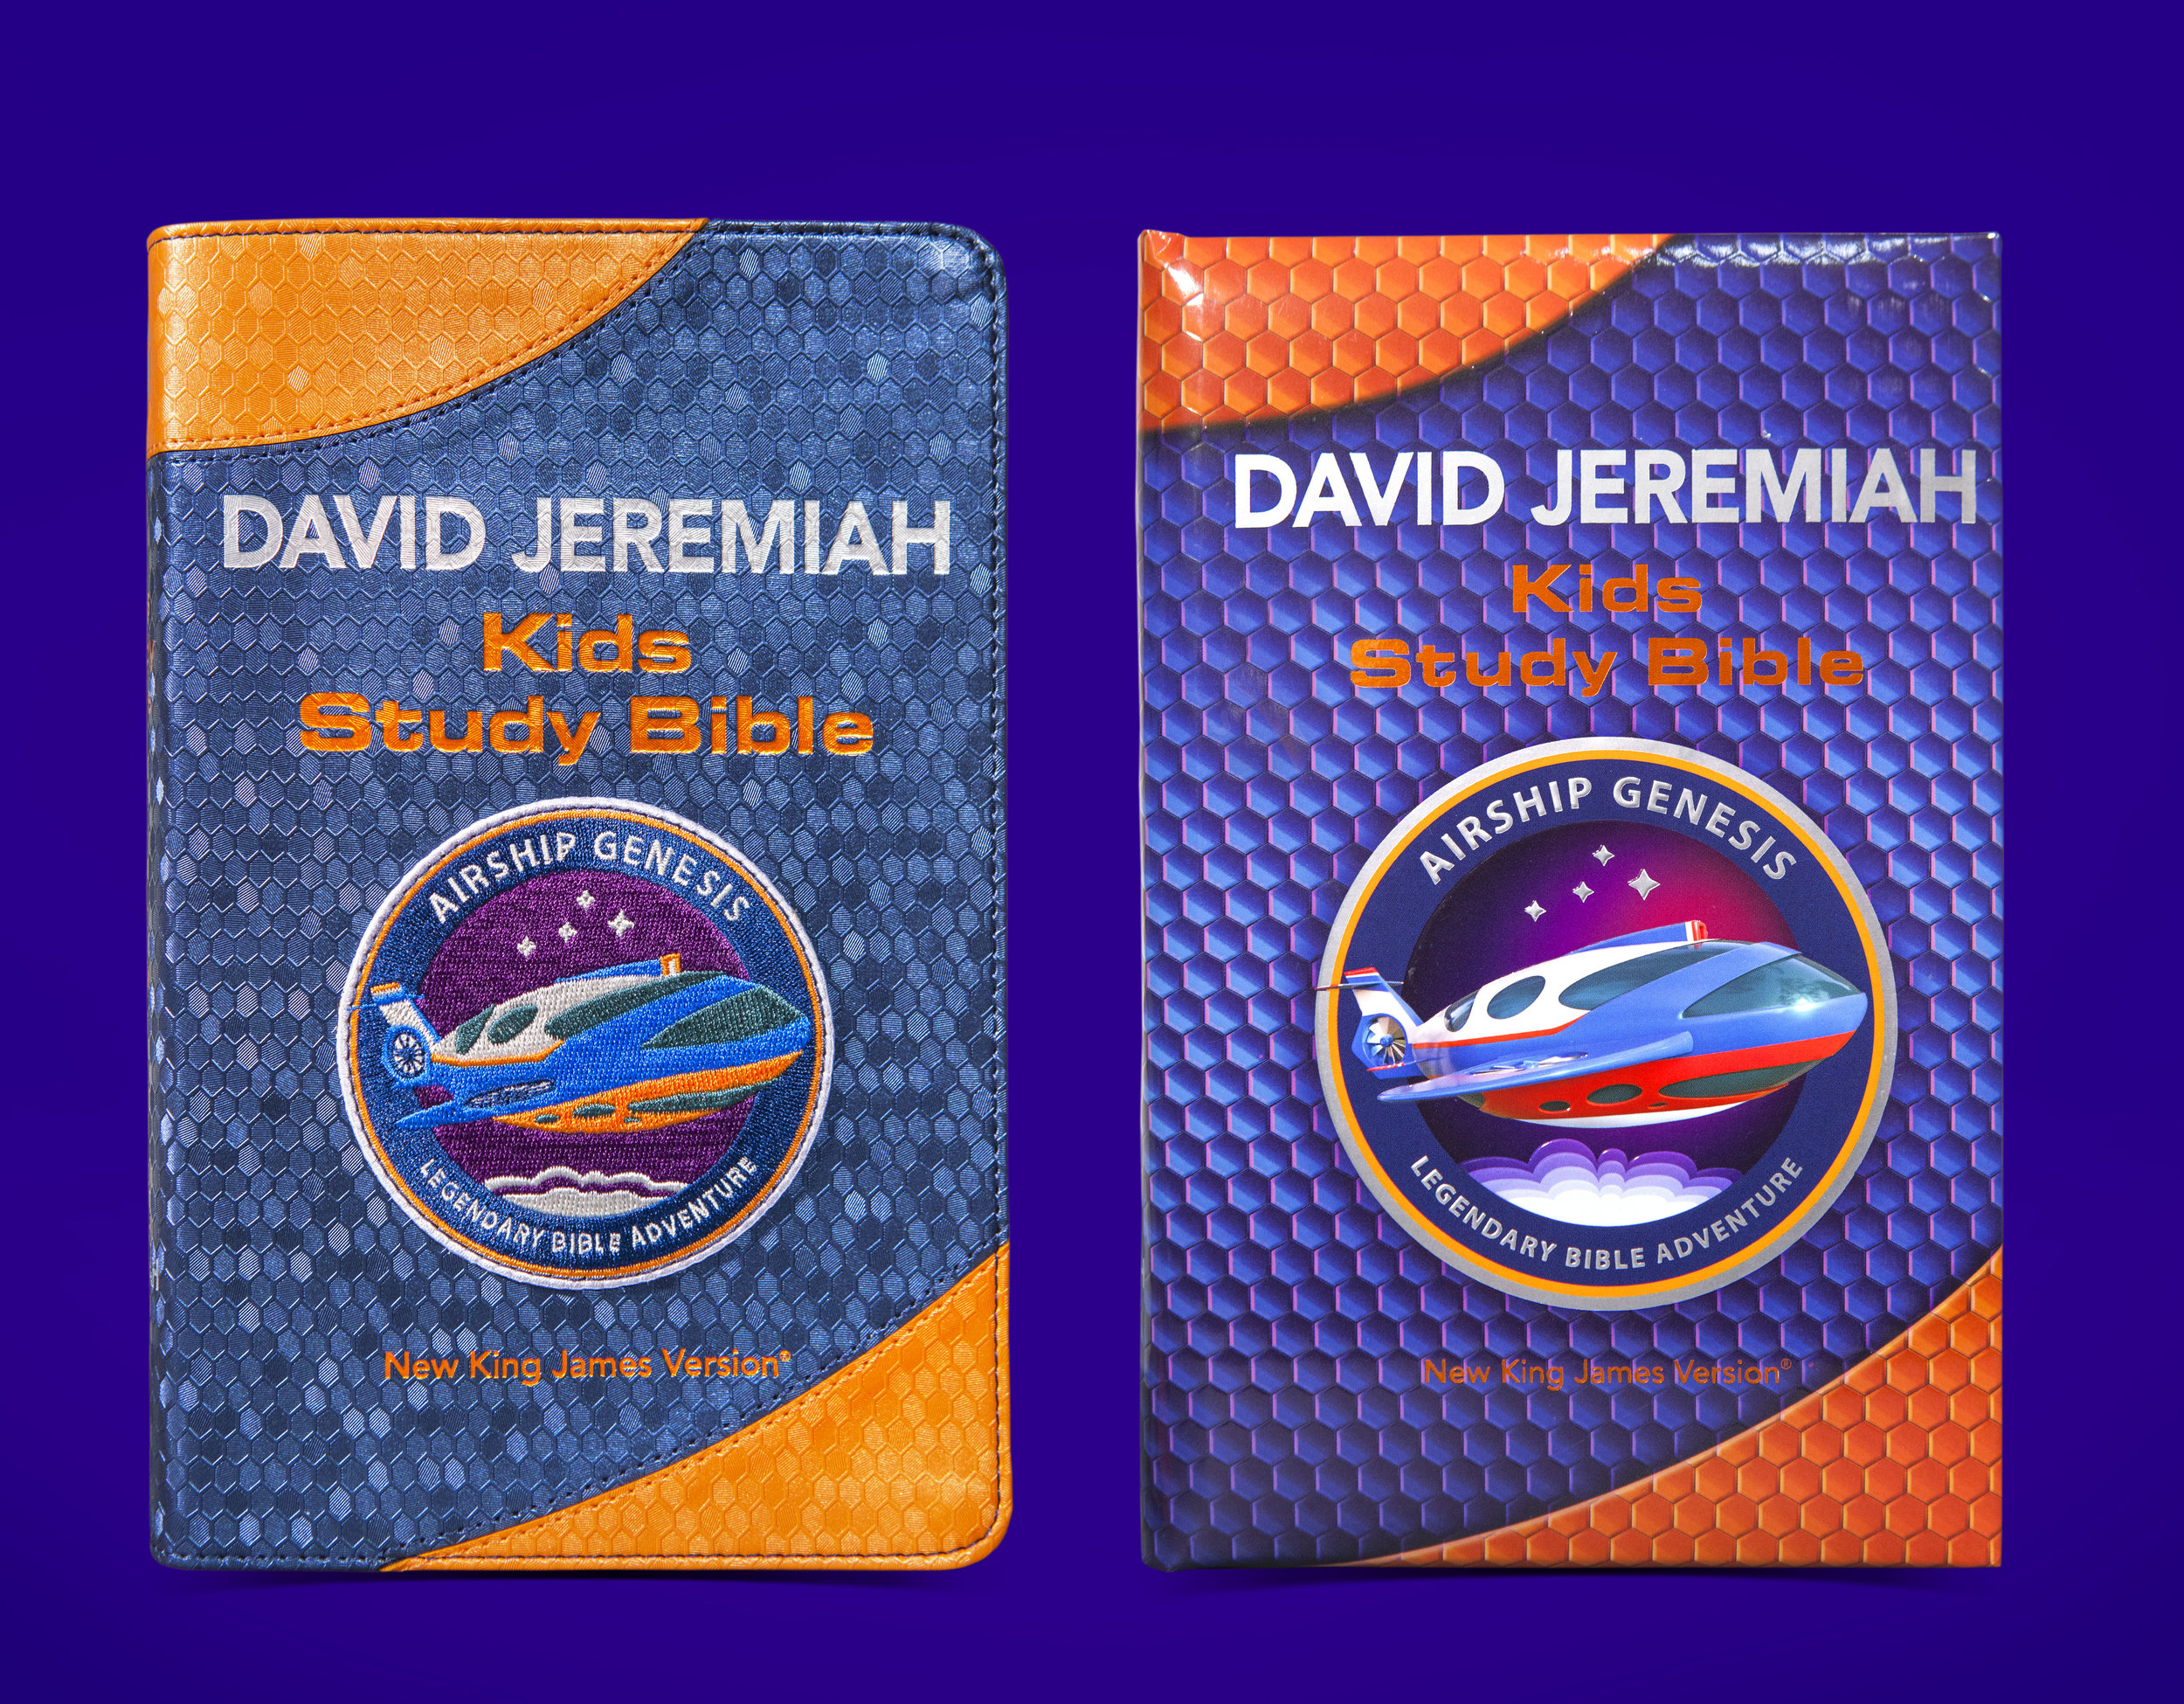 Cover Design  - Left: Techtile Leather version with 6 color embroidered patch | Right: Hardcover version with debossed texture.